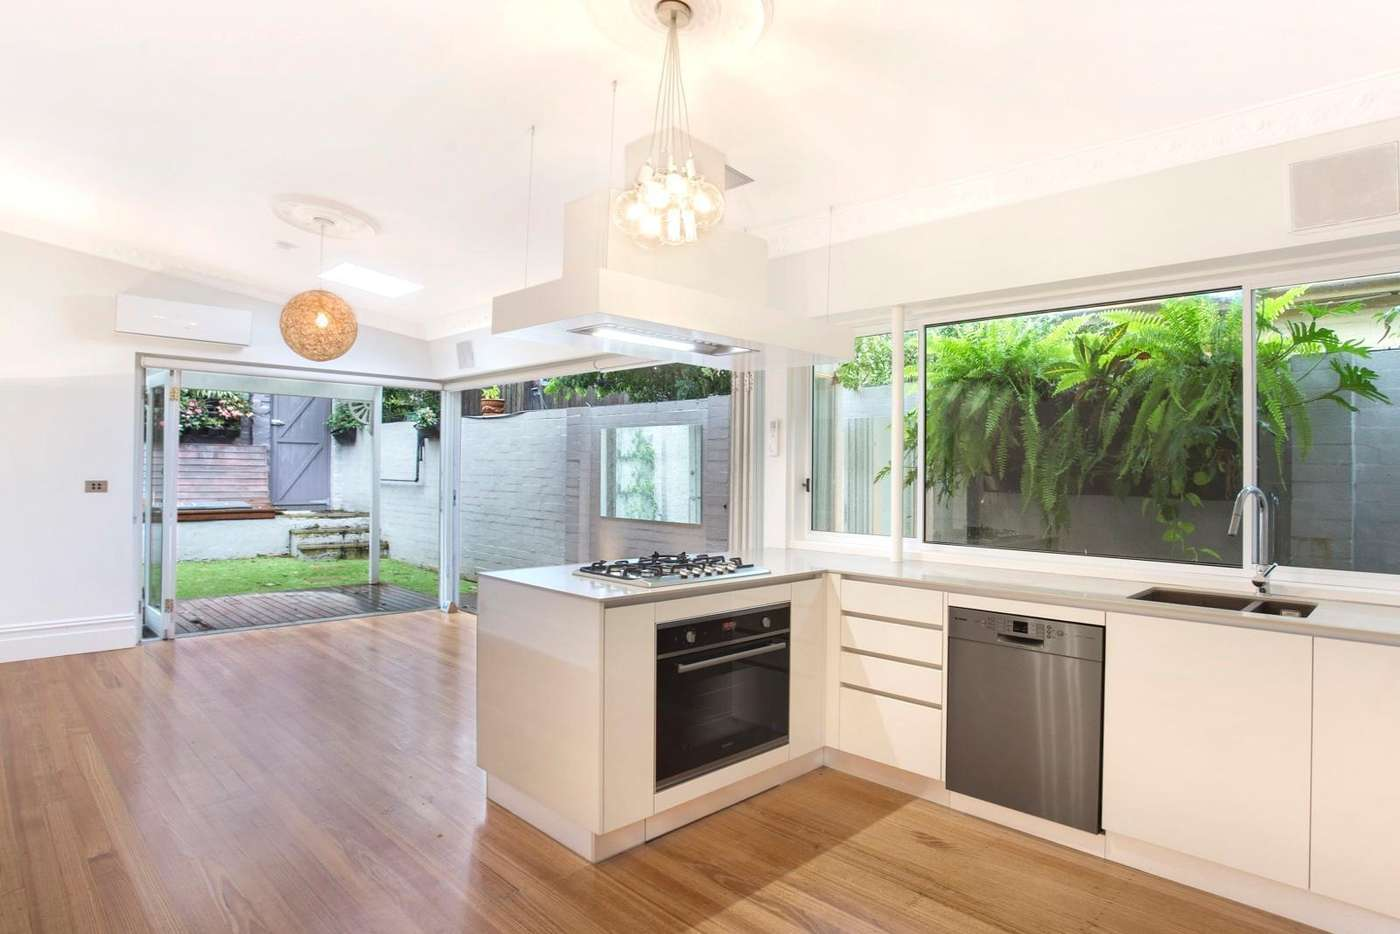 Main view of Homely house listing, 31 Cecily Street, Lilyfield NSW 2040